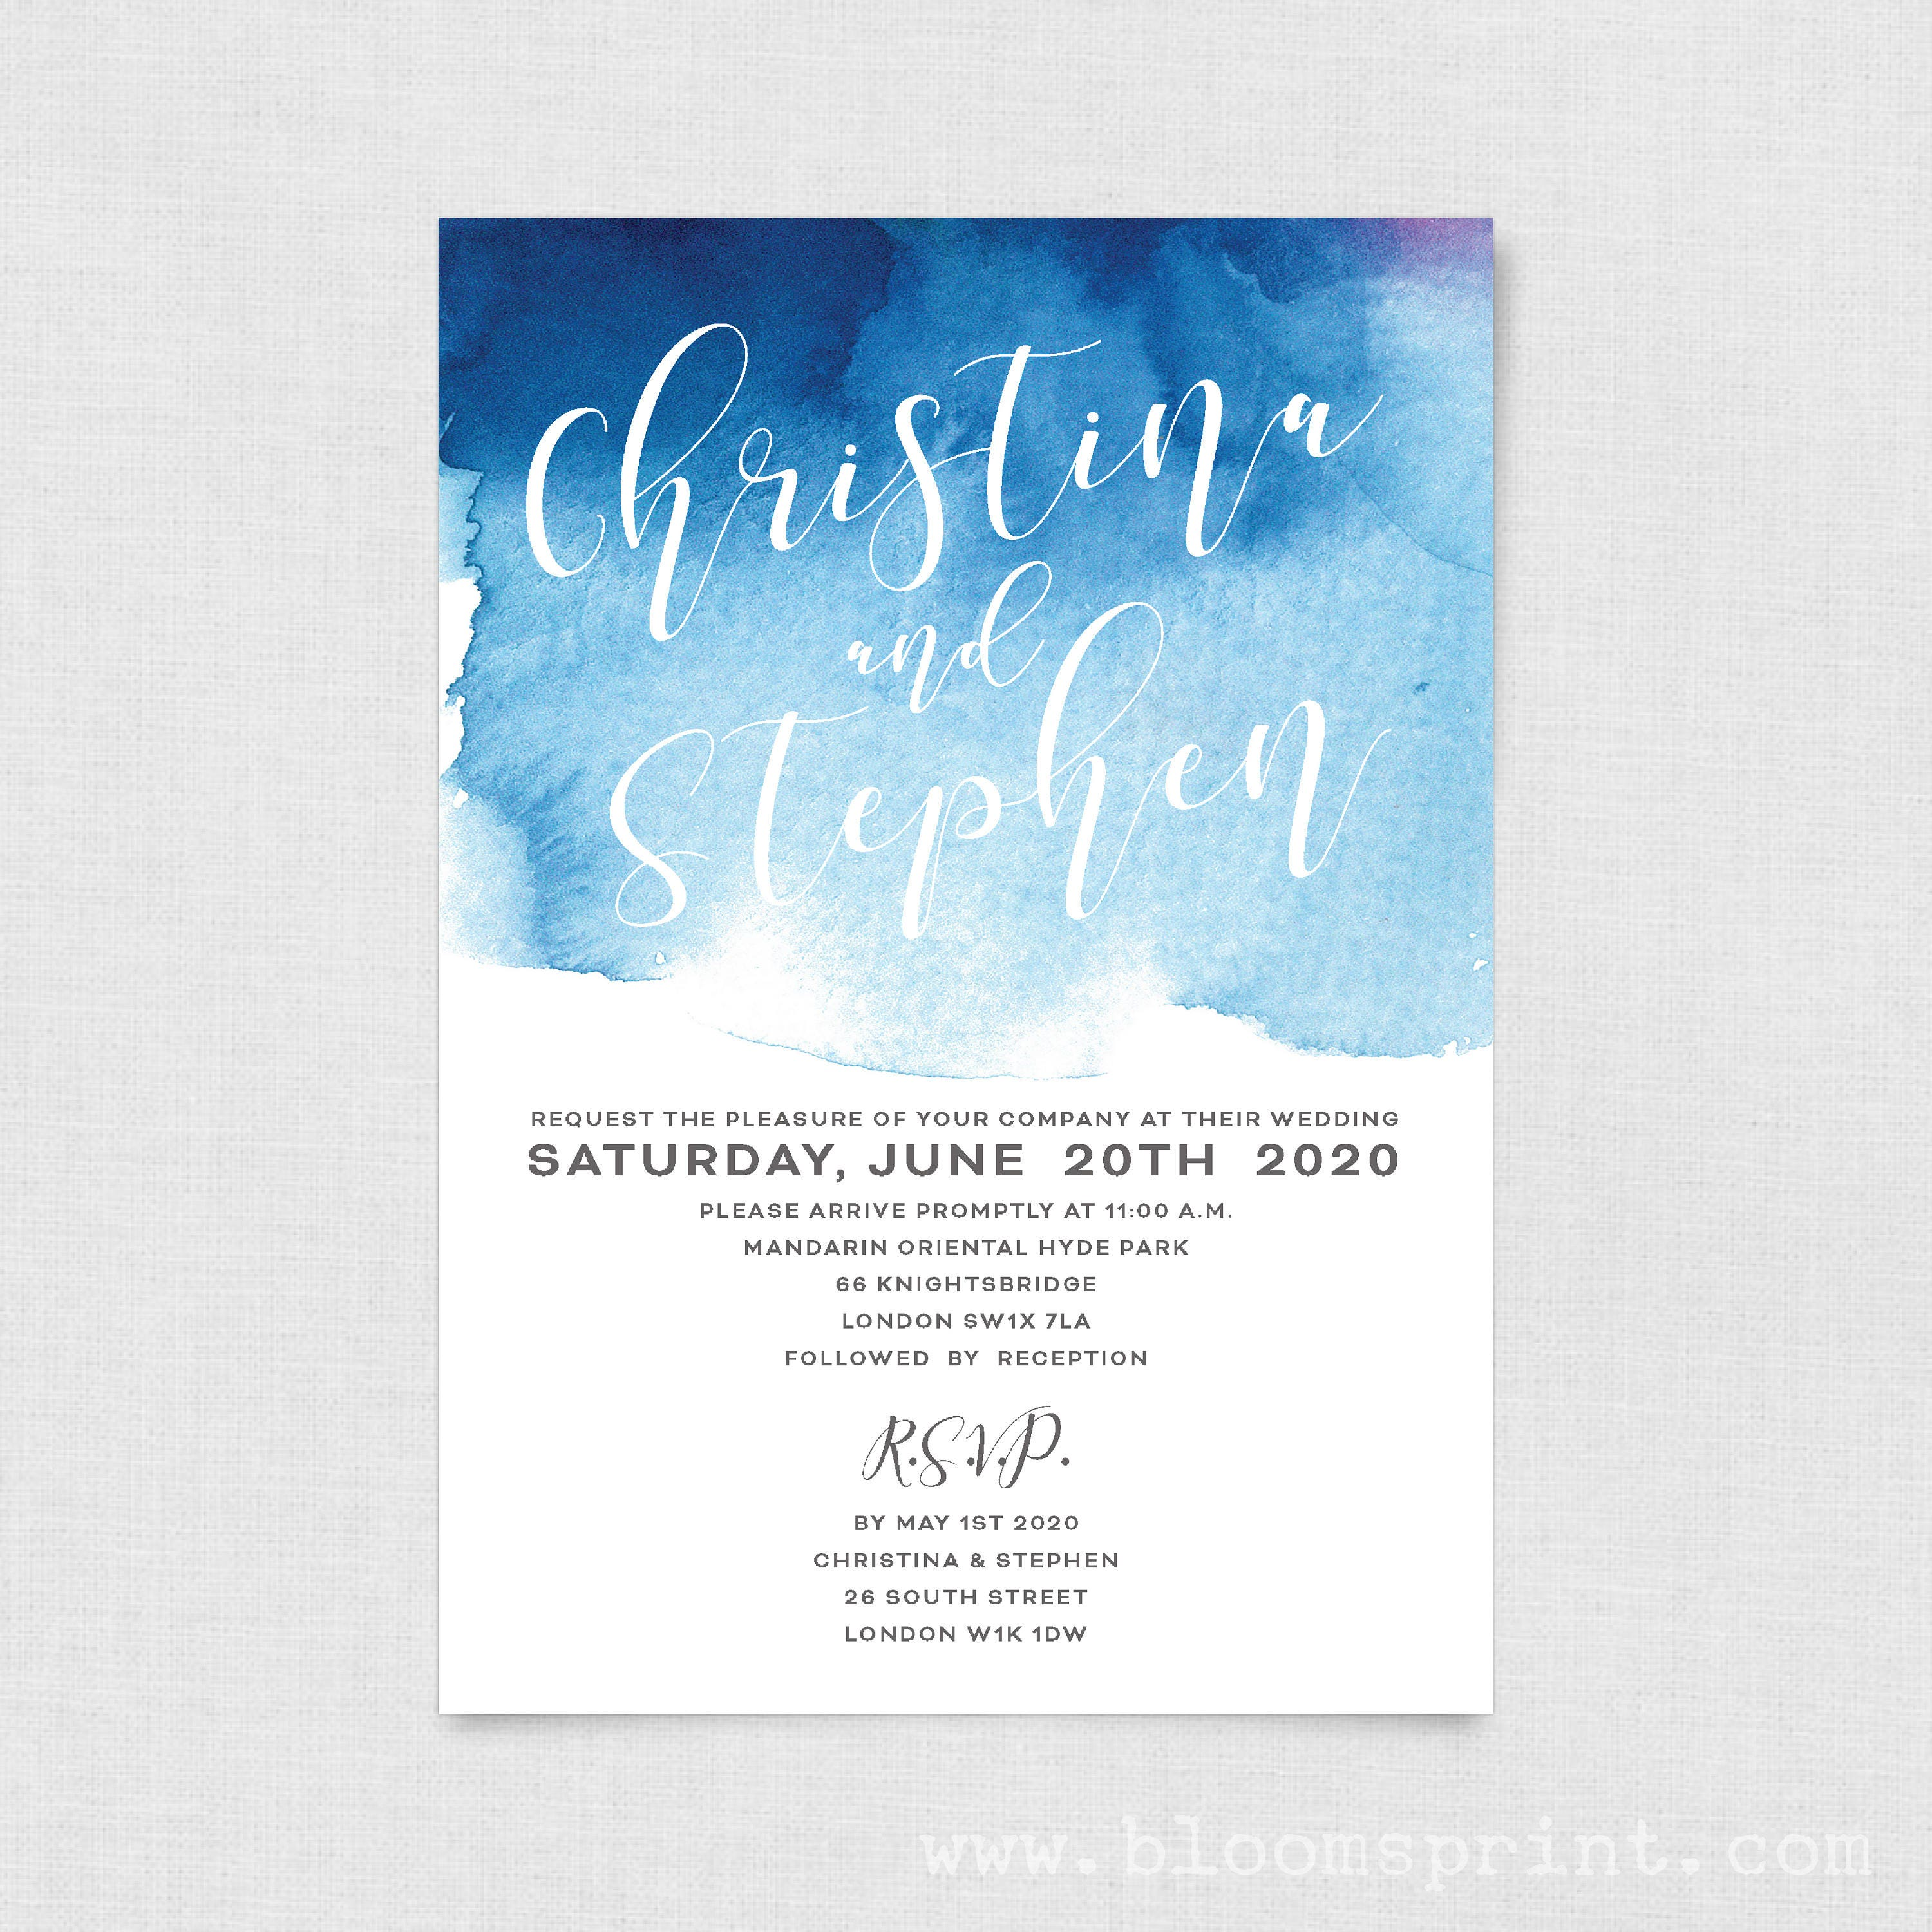 watercolor wedding invitation template simple wedding invitation set calligraphy wedding invitation engagement invites navy blue pink a5